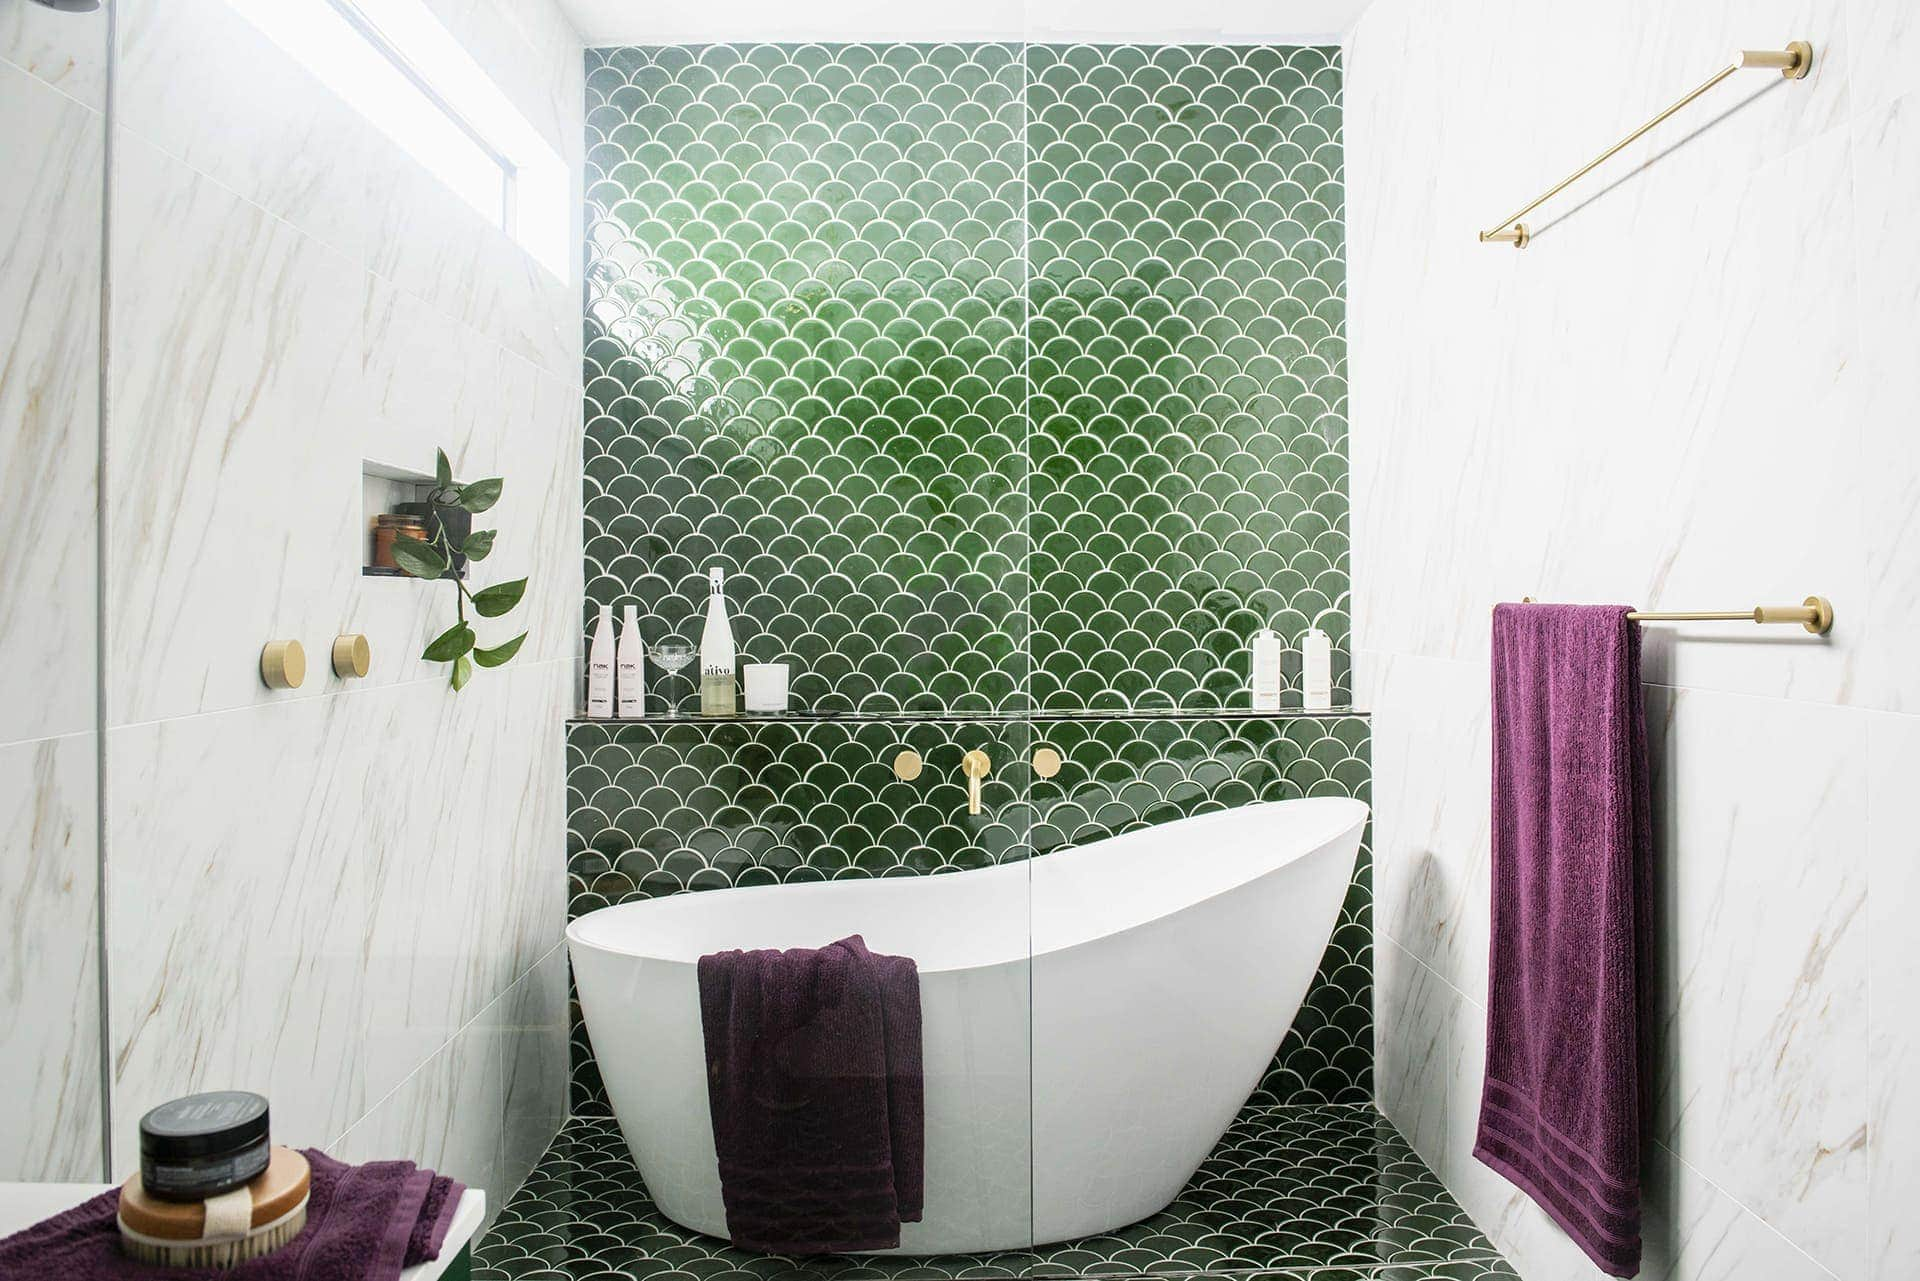 house rules 2019 pete and courtney bathroom with green feature tiles in shower and gold tapware